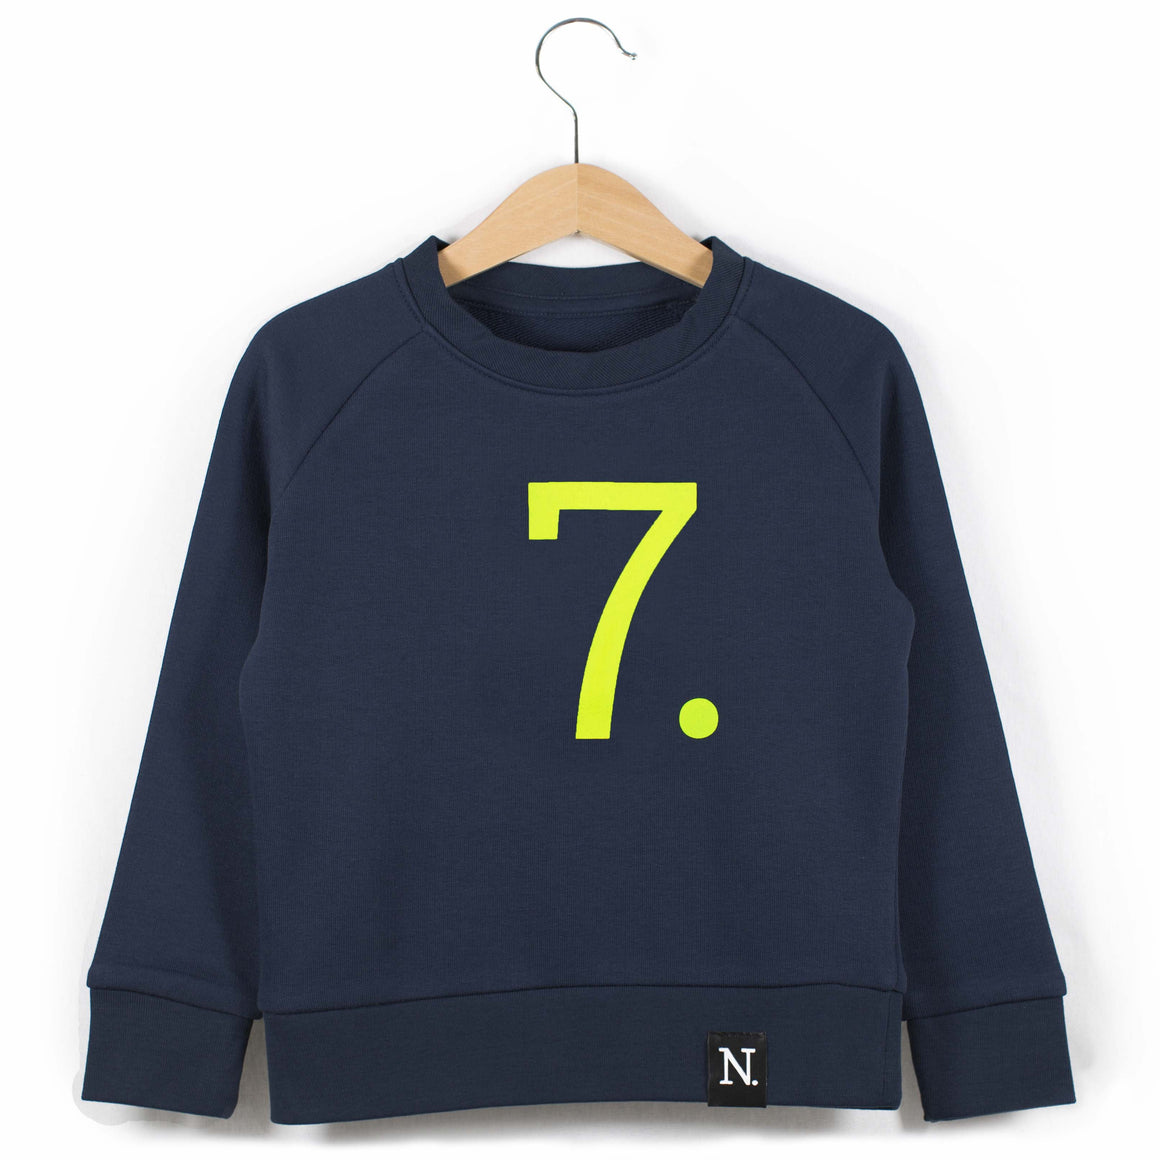 The Number 7 navy sweatshirt front